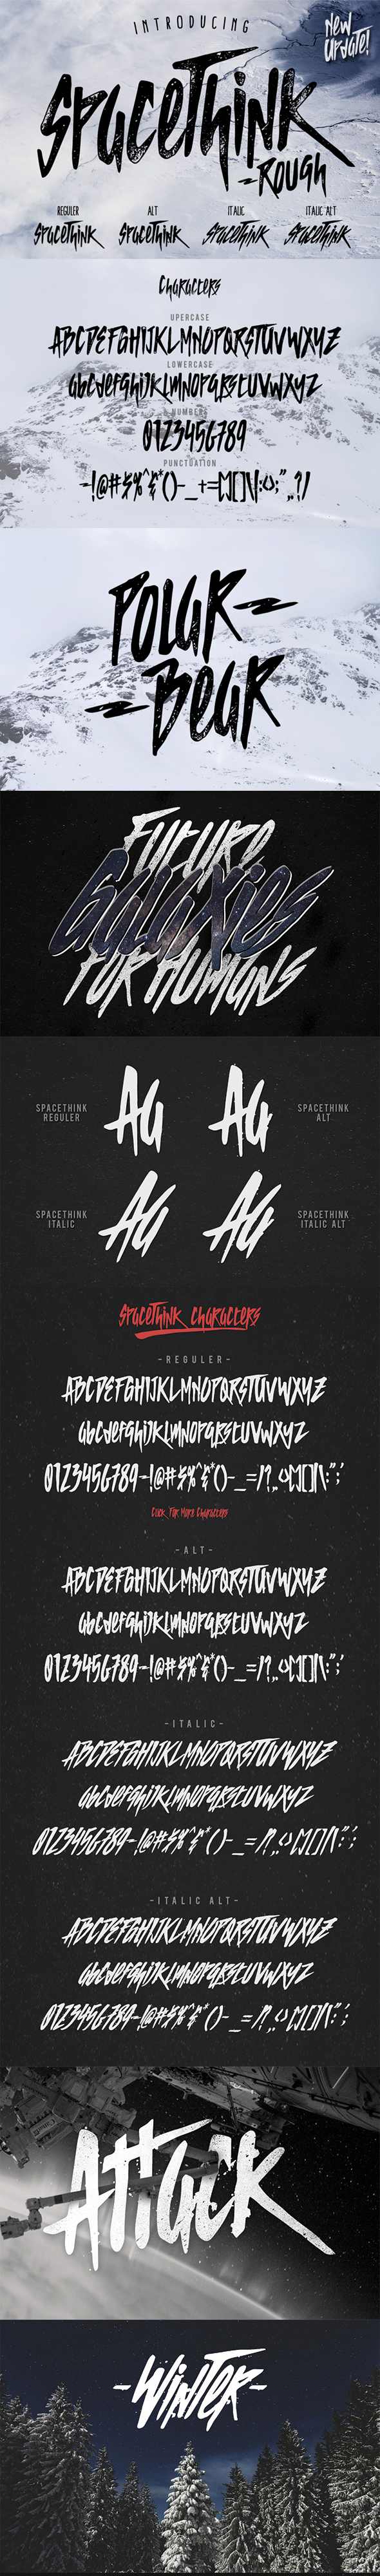 Spacethink Typeface - Decorative Fonts